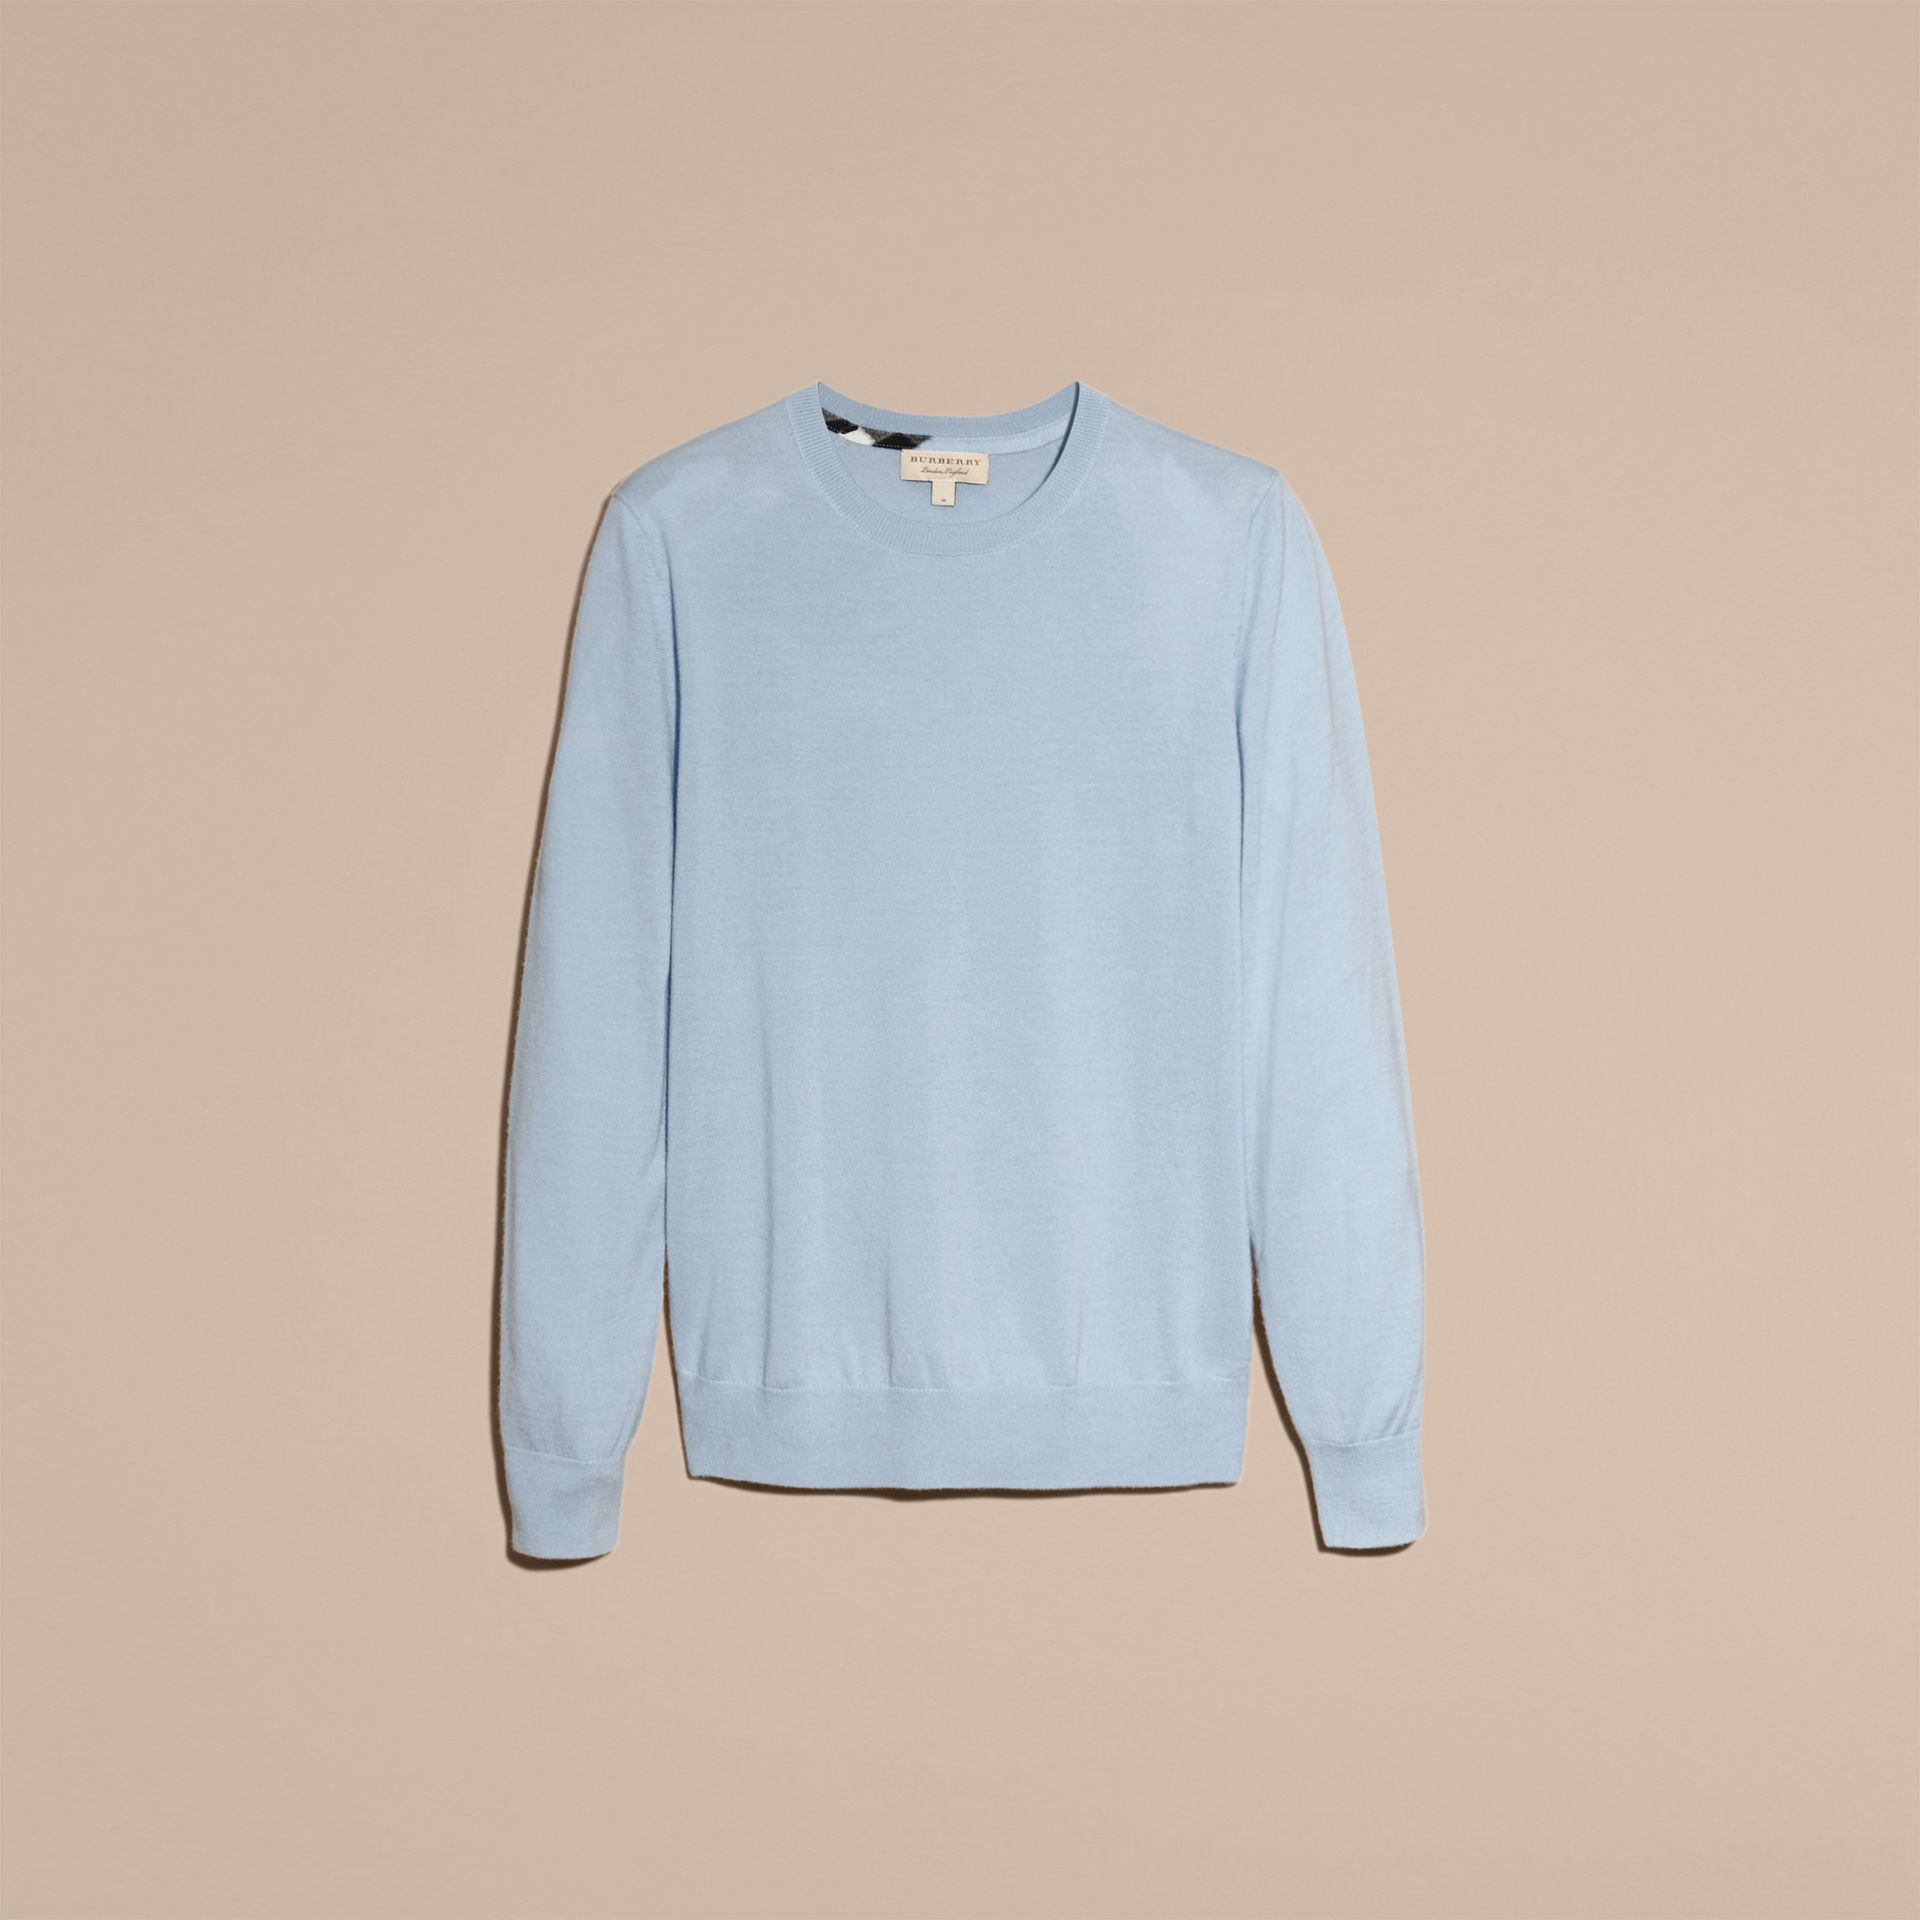 Lightweight Crew Neck Cashmere Sweater with Check Trim in Light Blue - Men | Burberry - gallery image 4